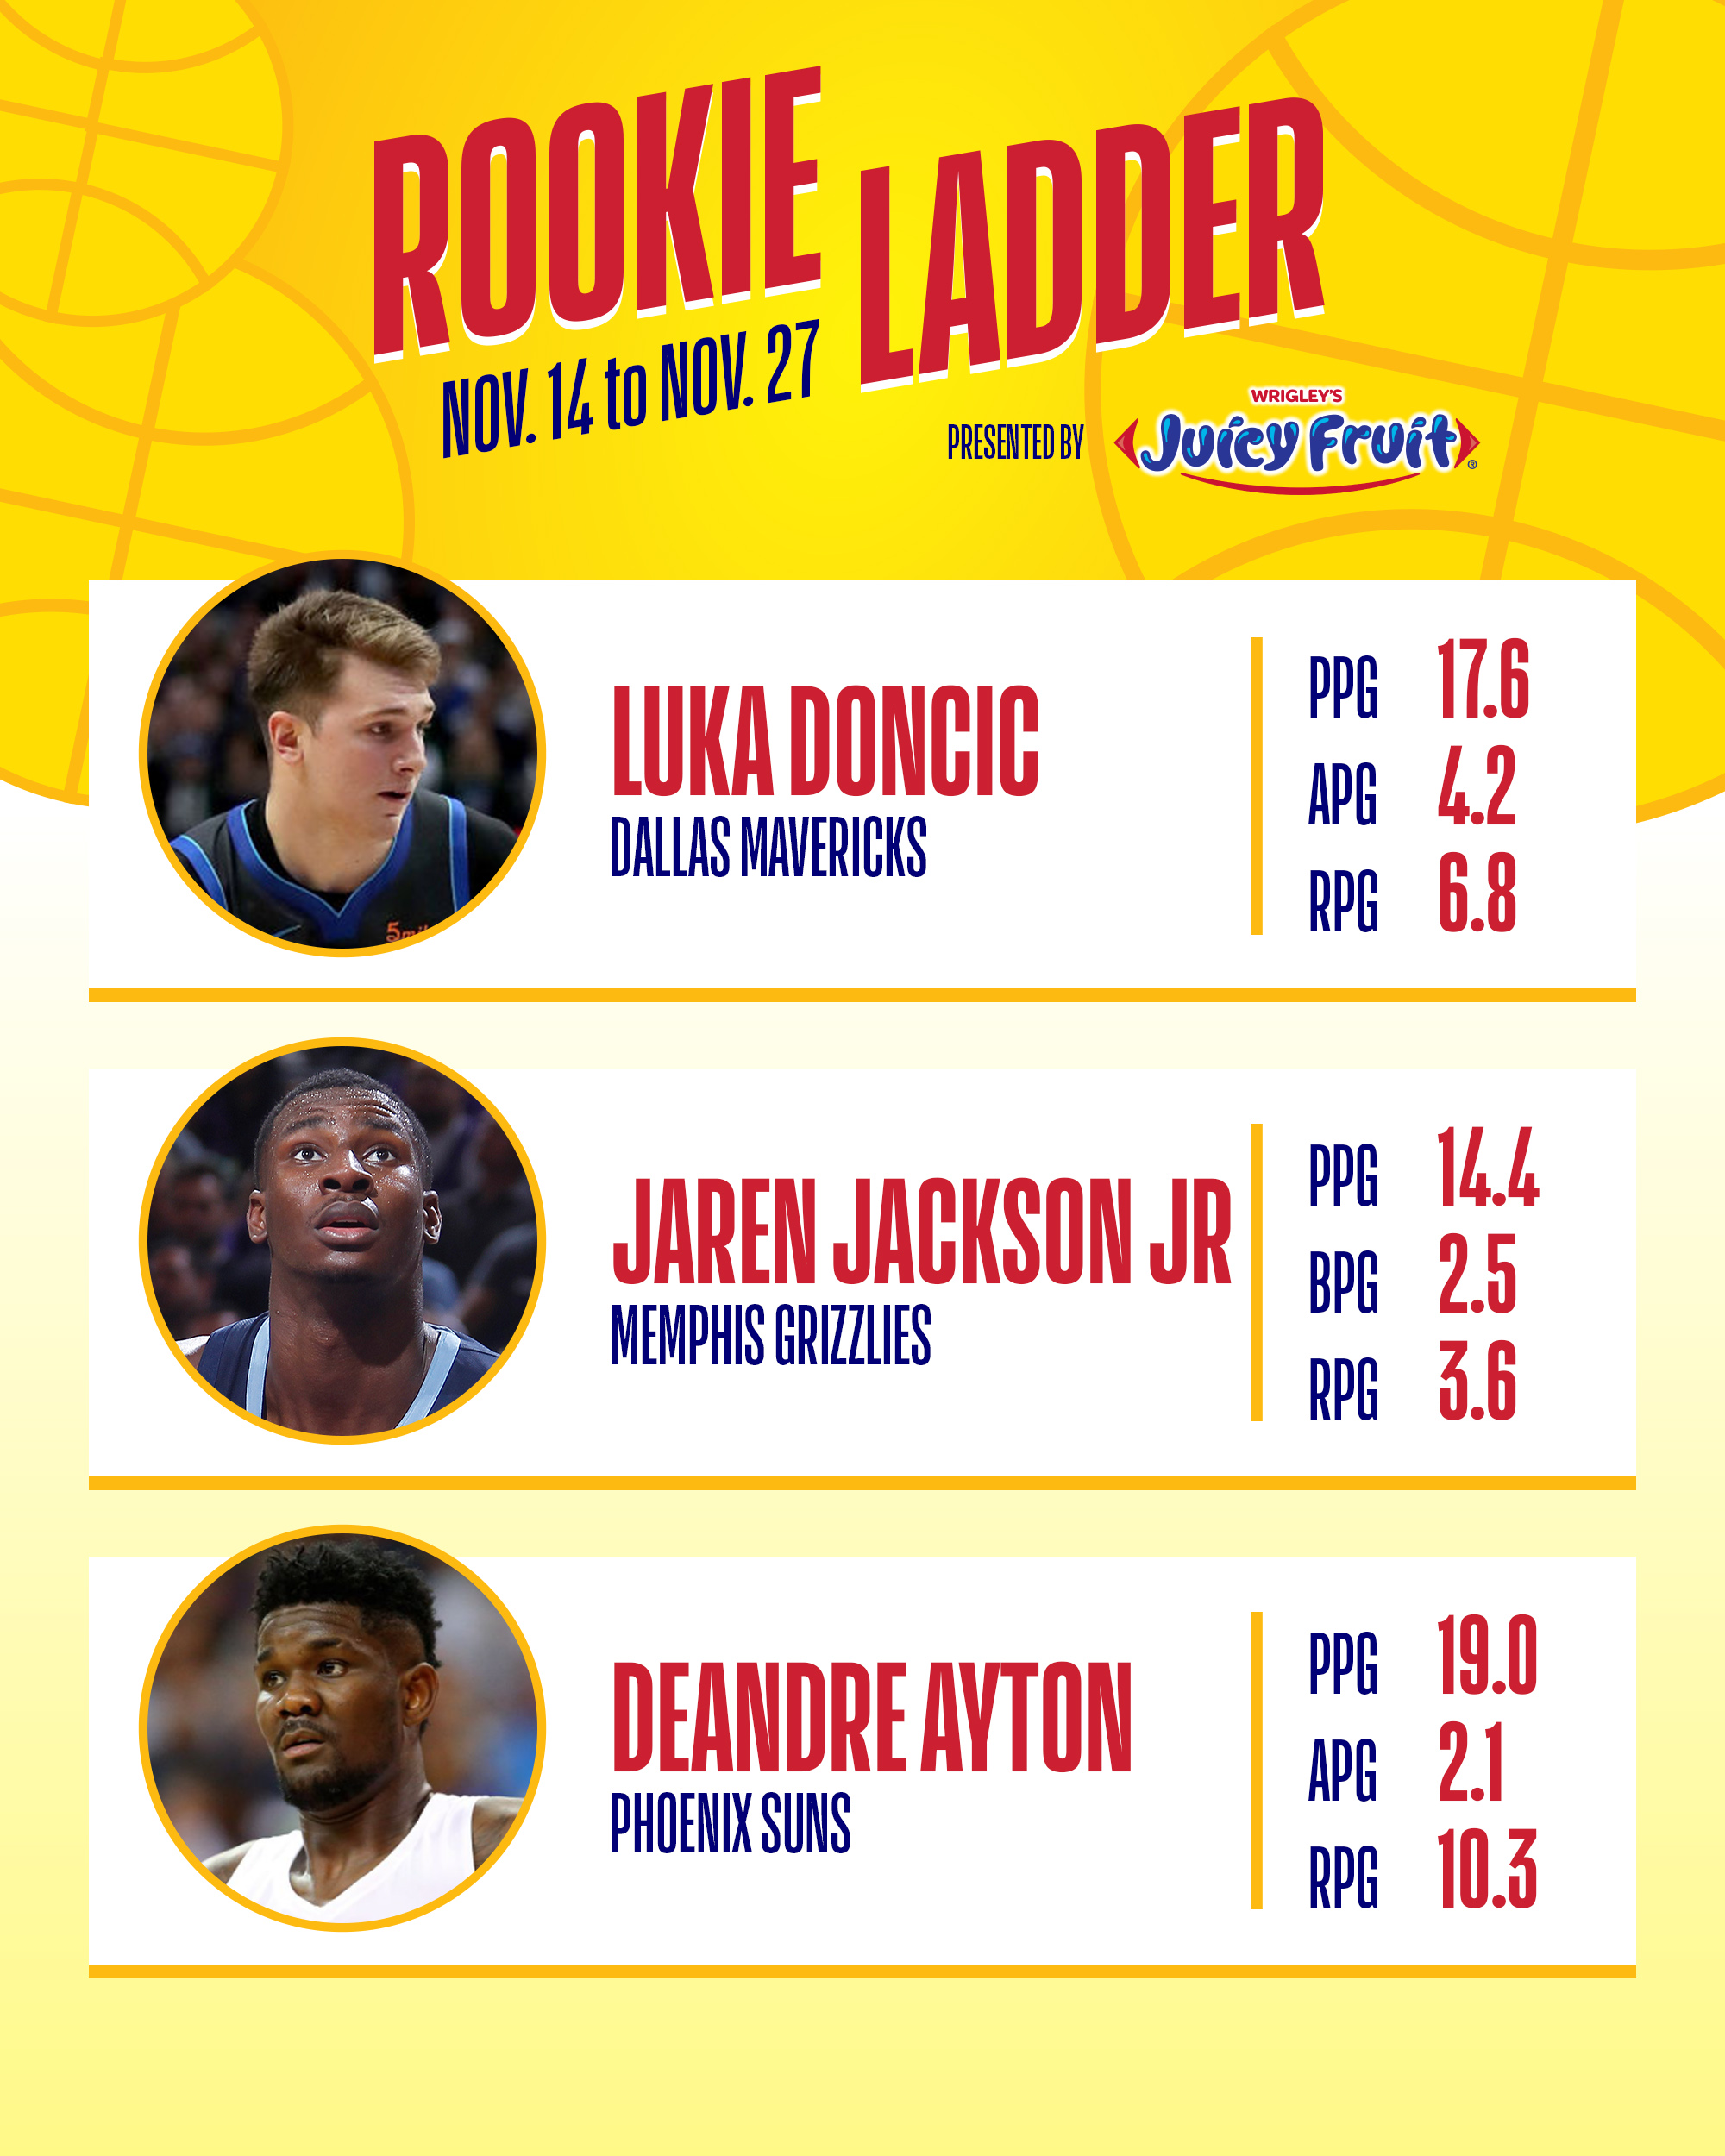 Nba Rookie Of The Year Power Rankings Luka Doncic Or Trae: NBA Rookie Ladder Presented By Juicy Fruit: Luka Doncic